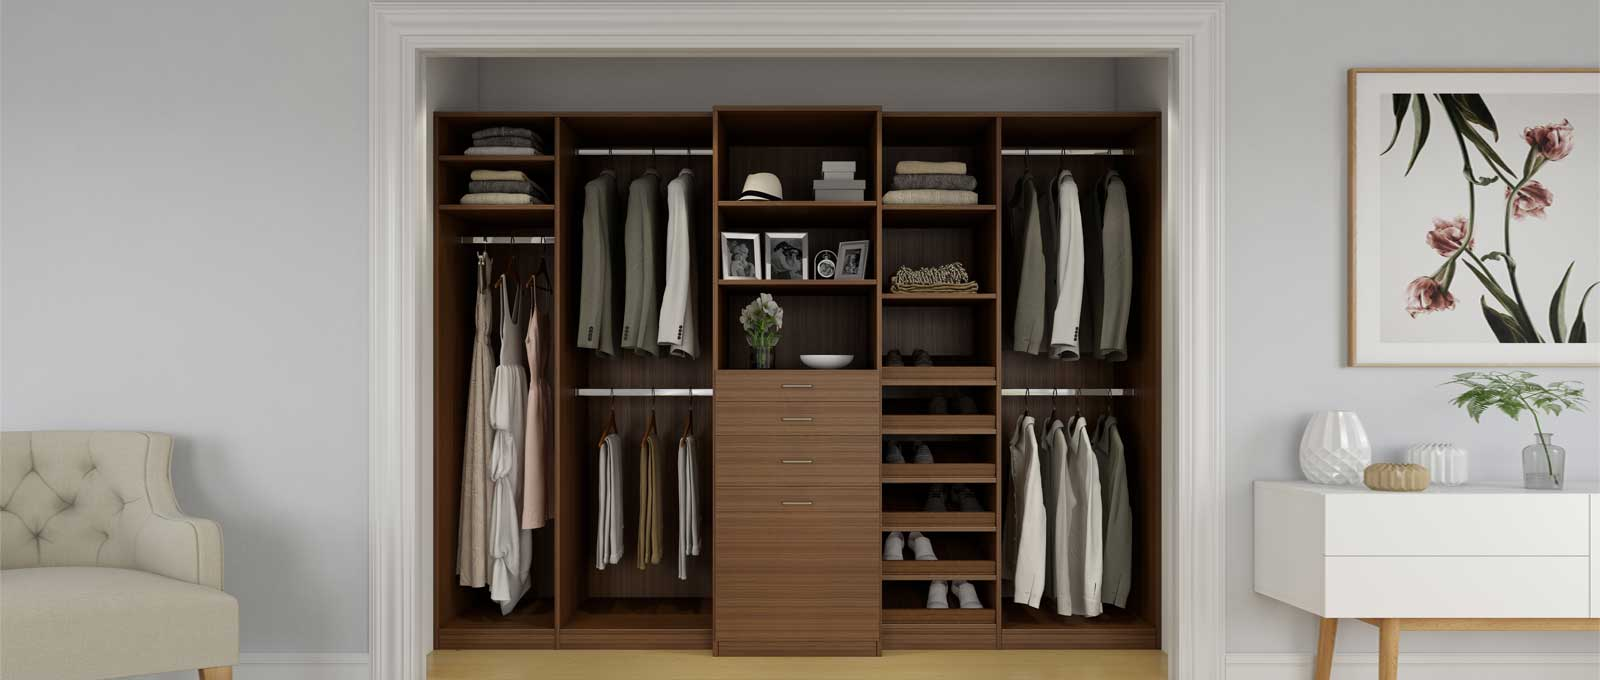 Bedroom: Light Wood Closet Organizer Lowes With Shelves And ...